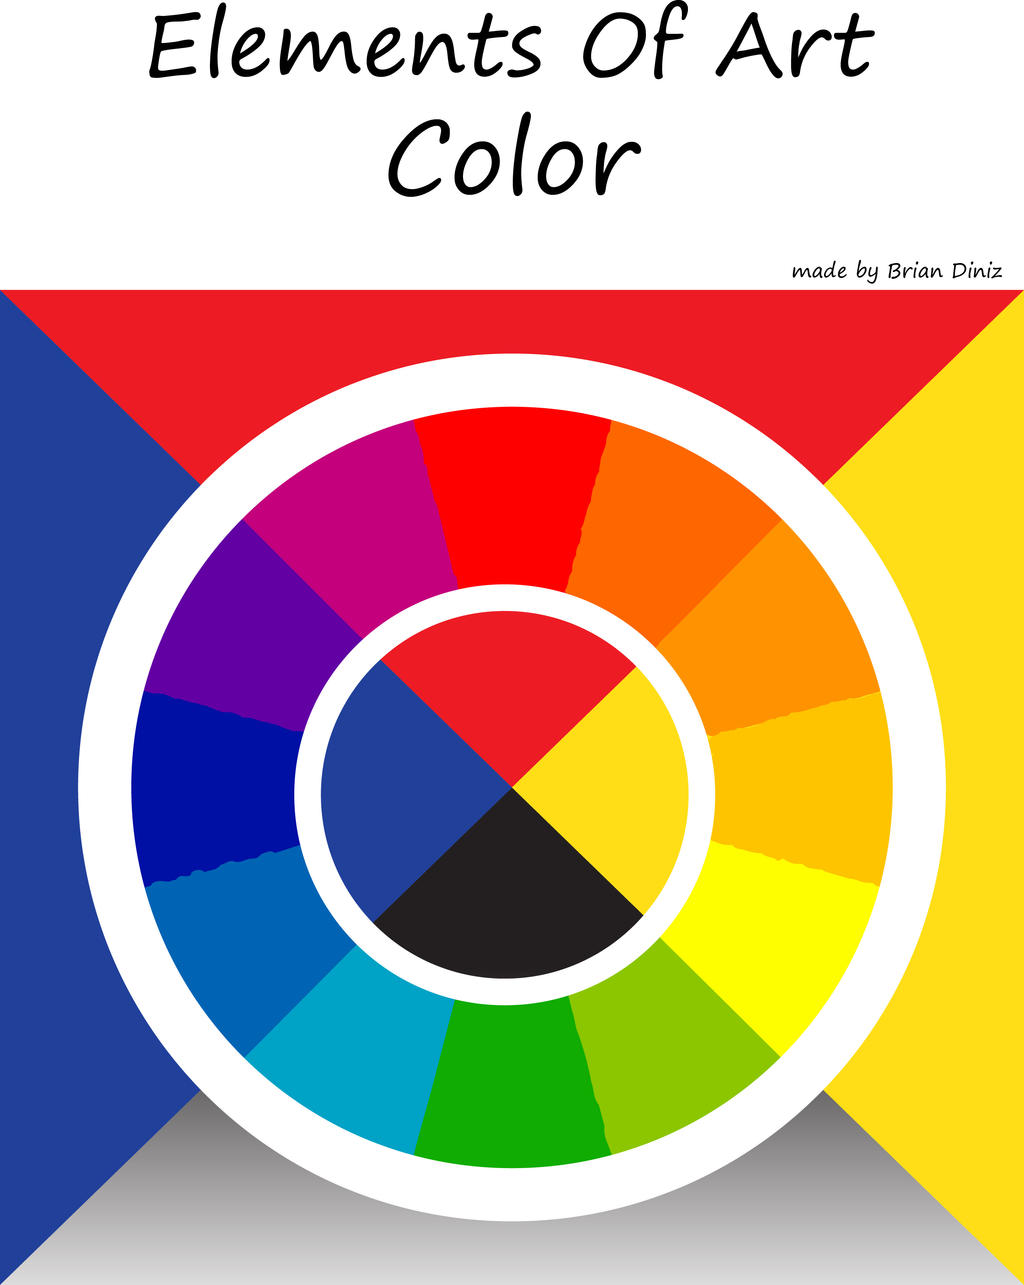 6 Elements Of Art : Elements of art color by briandnz on deviantart